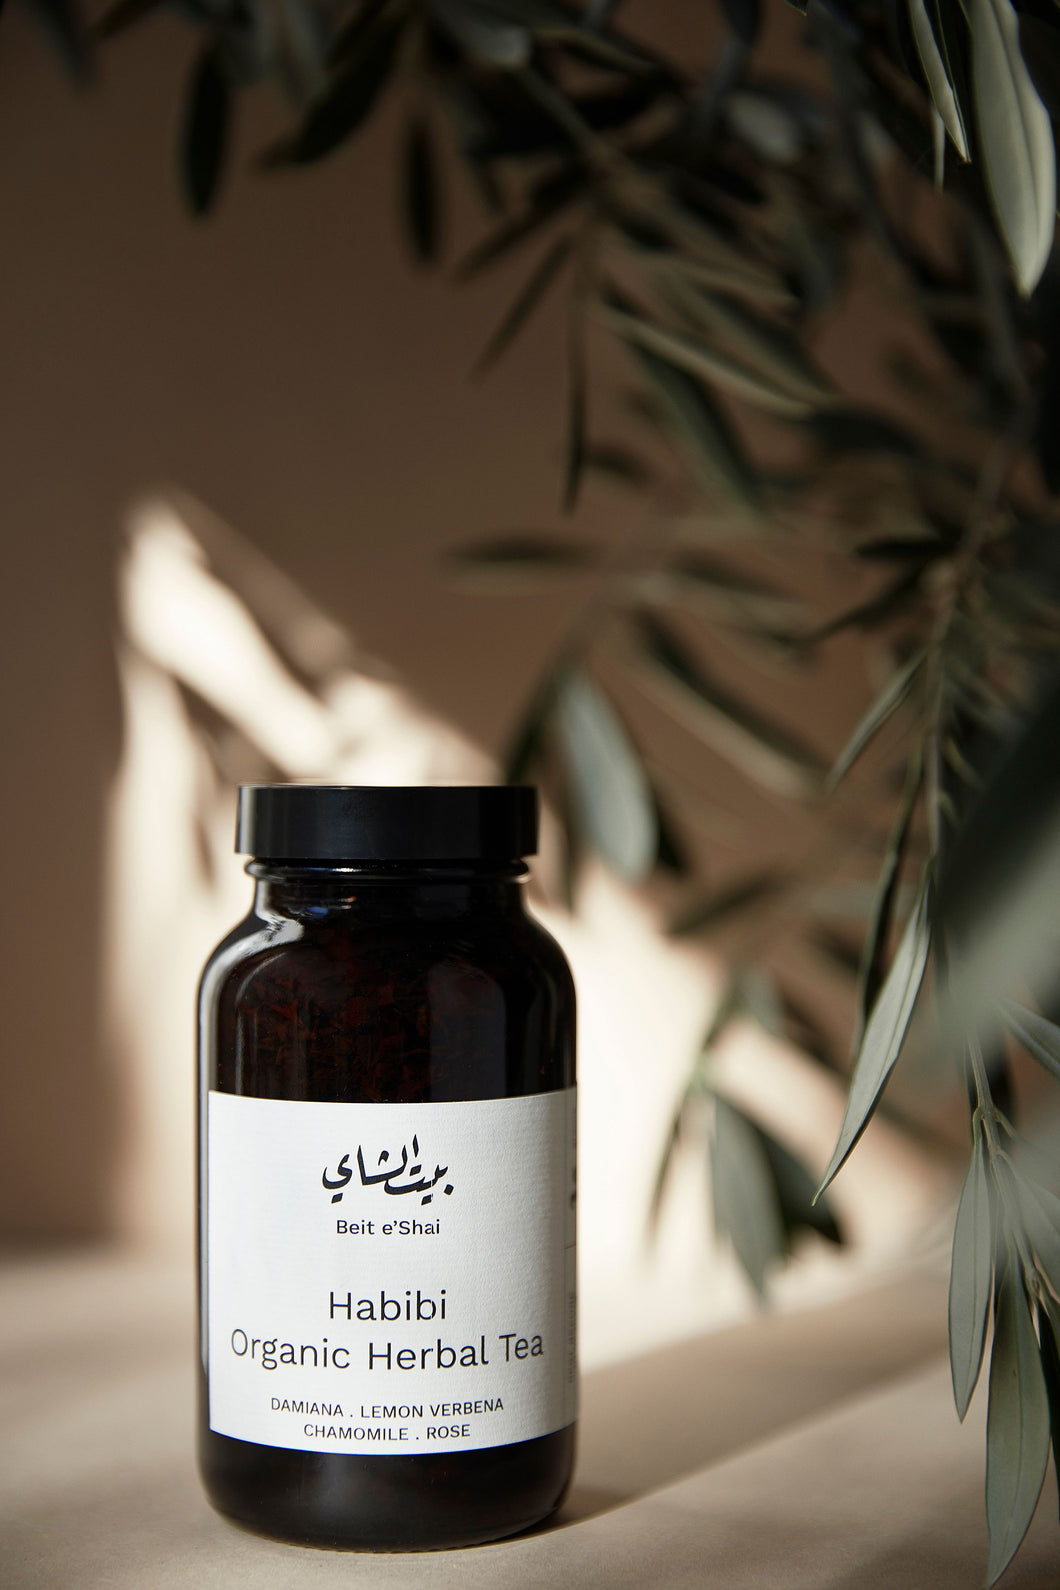 Habibi Tea Organic Herbal Tea